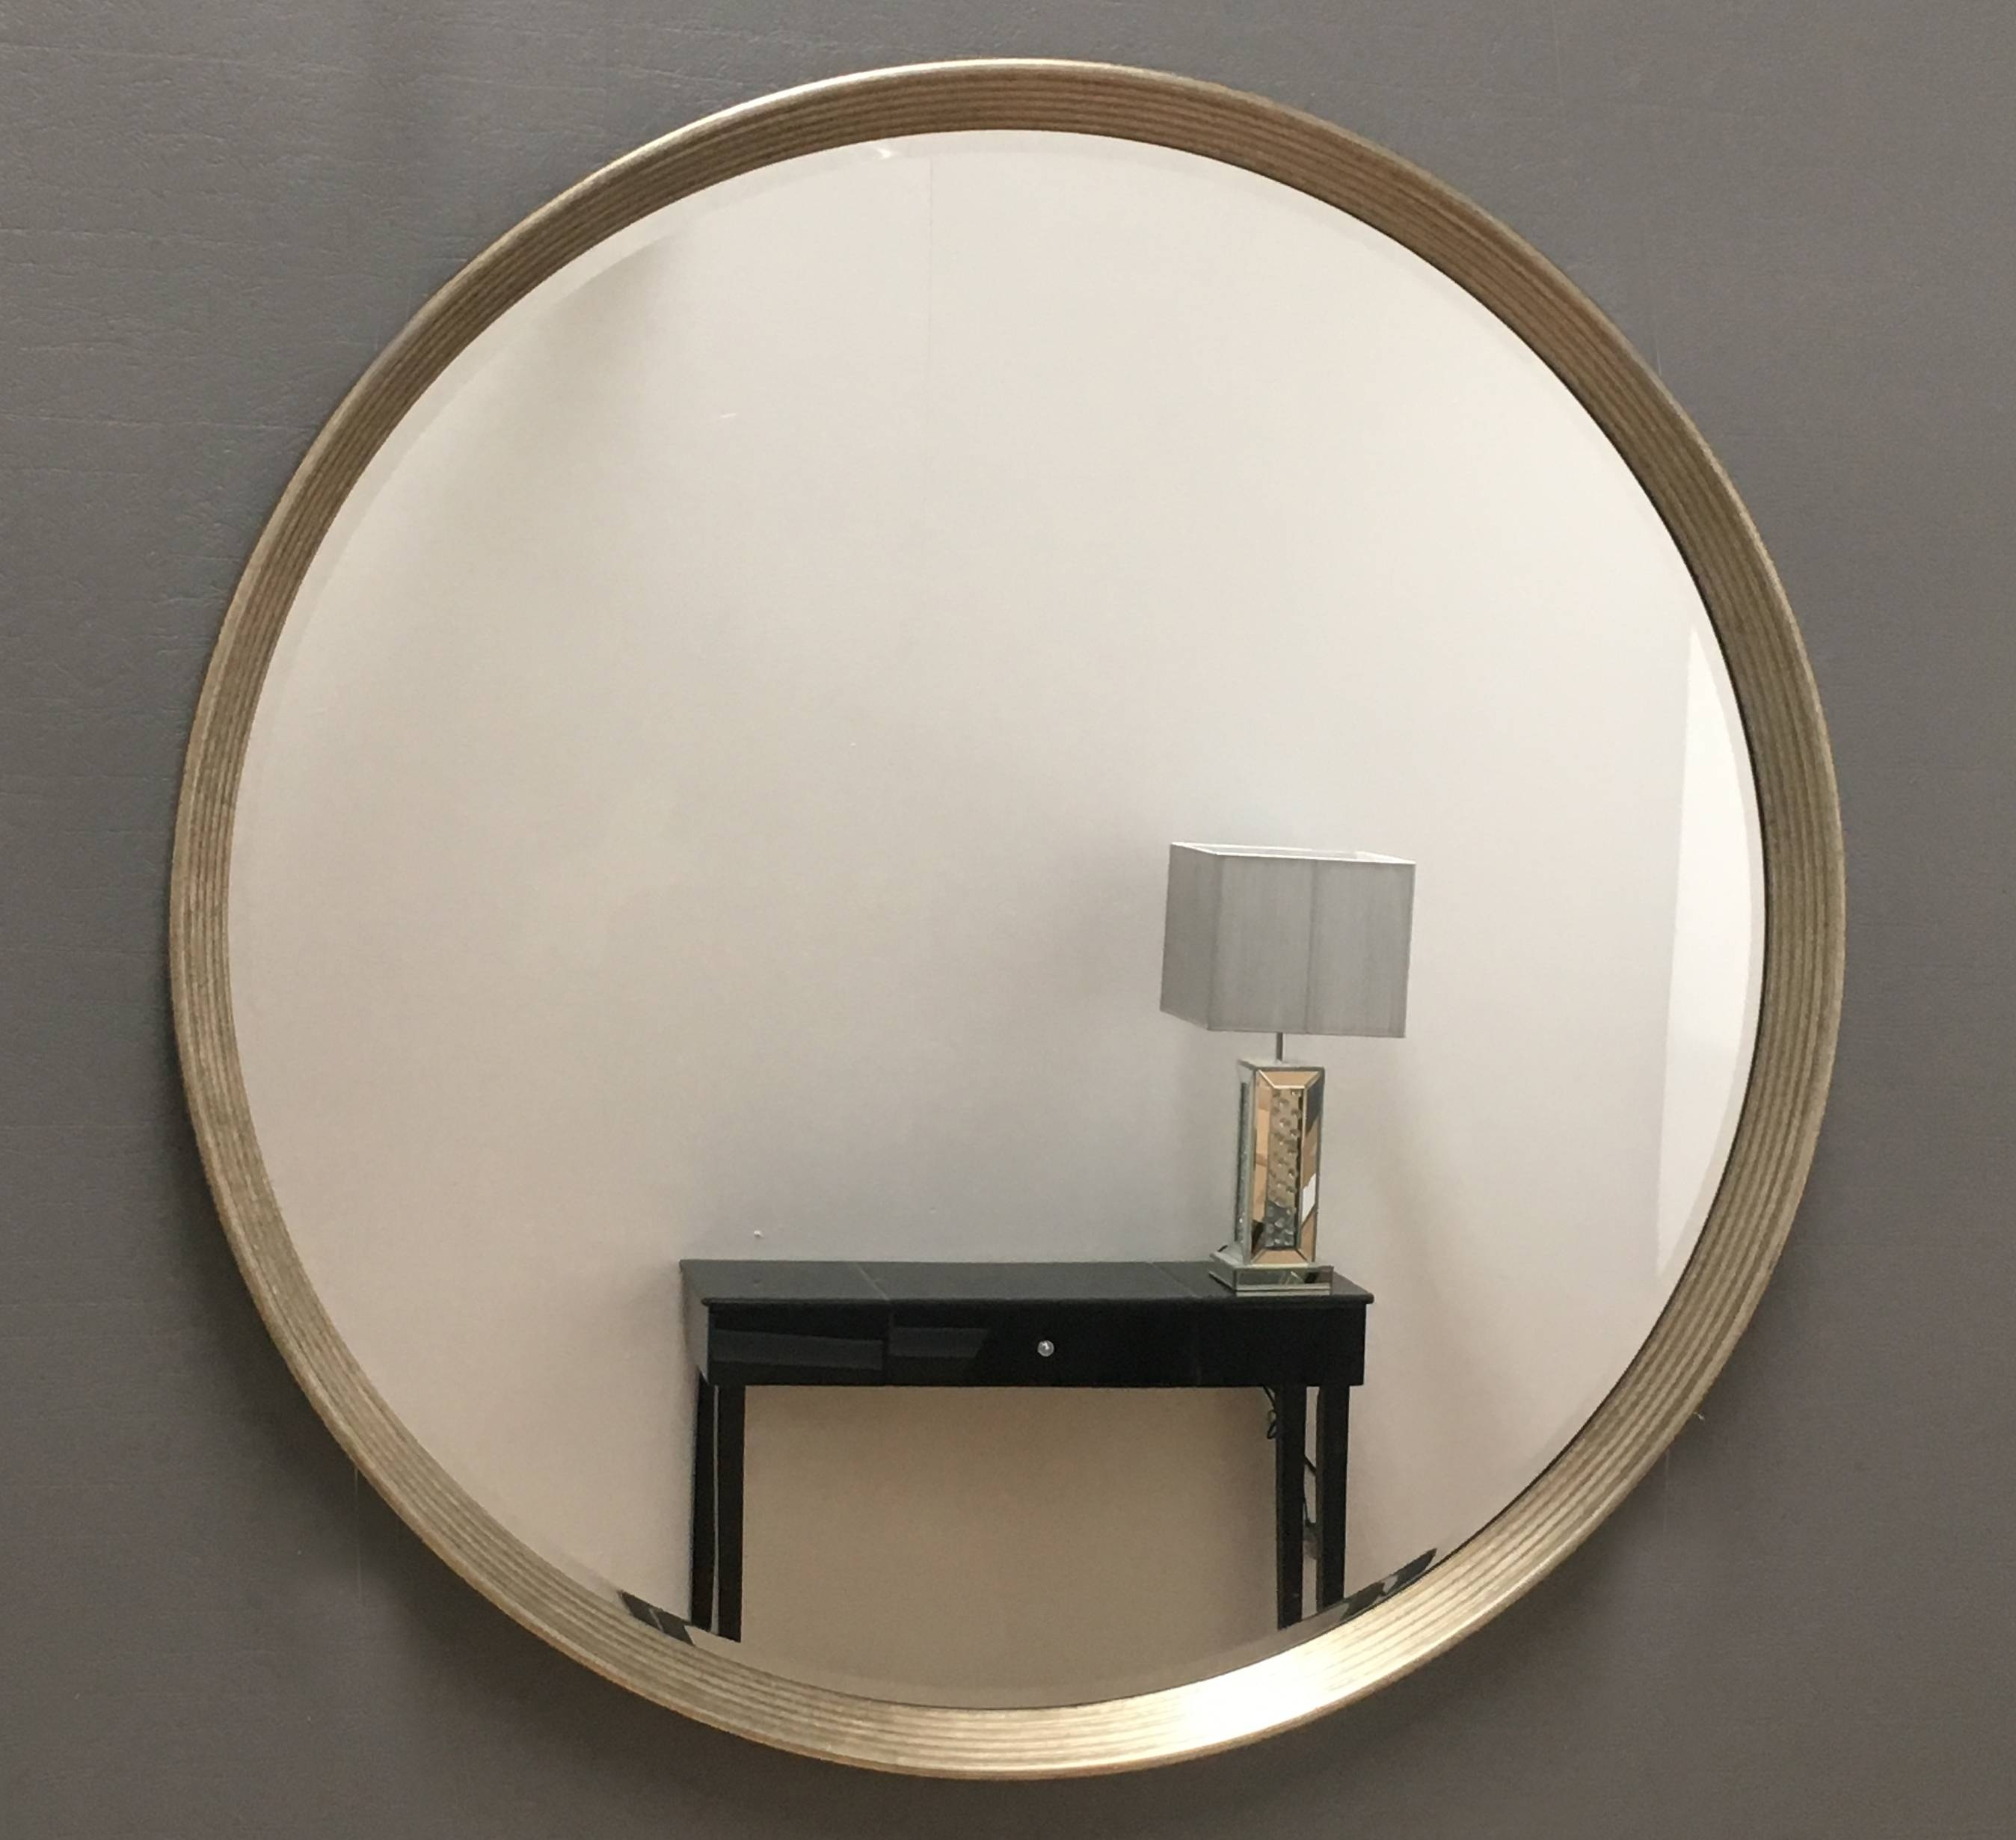 Round Mirrors | Round Wall Mirrors| Exclusive Mirrors throughout Antique Round Mirrors (Image 22 of 25)